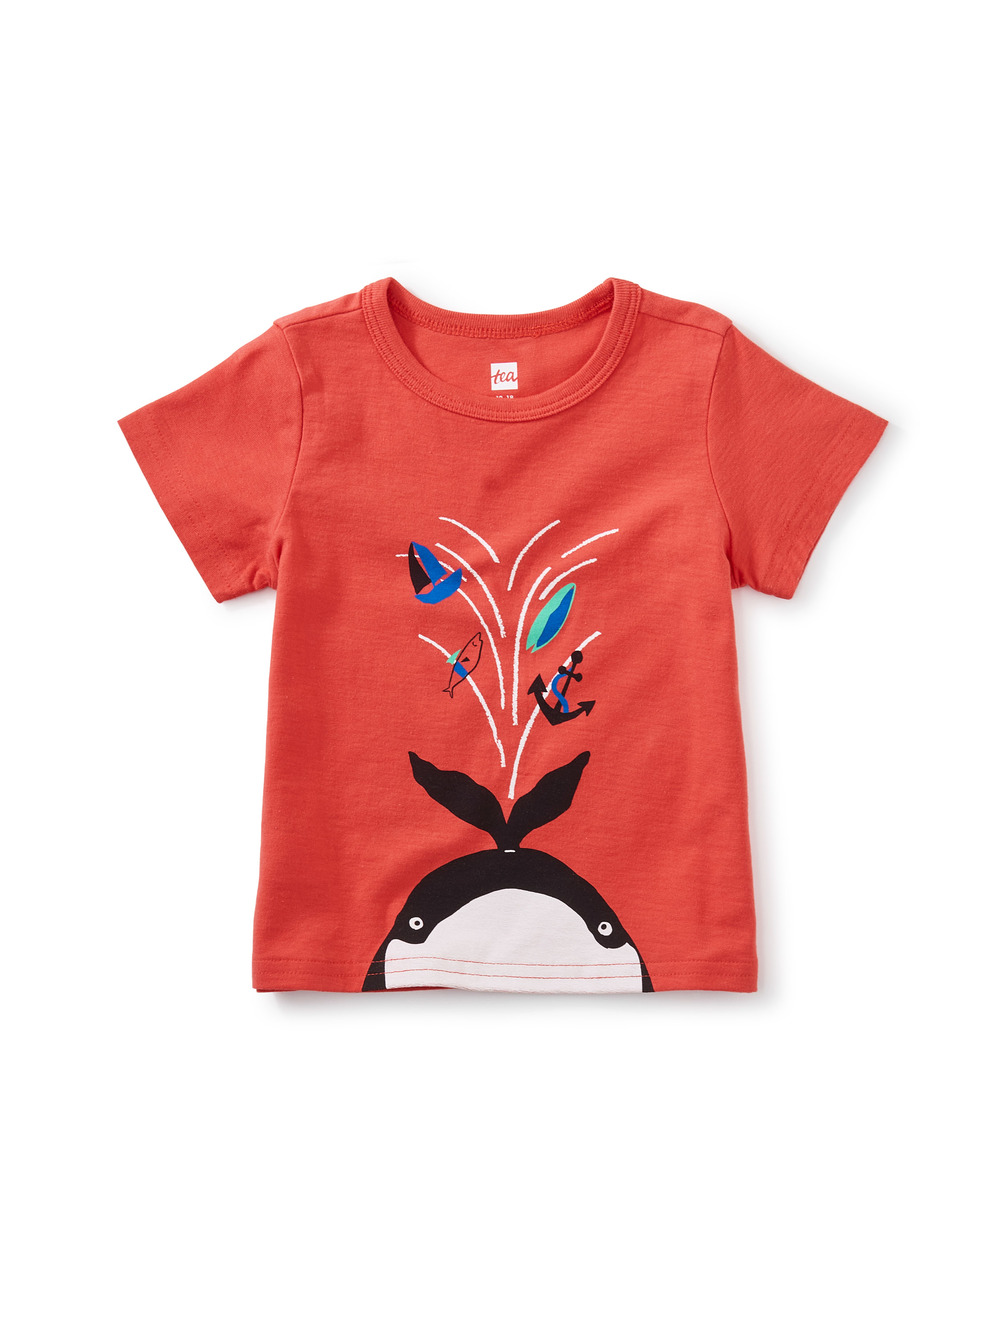 Whale Spout Baby Graphic Tee